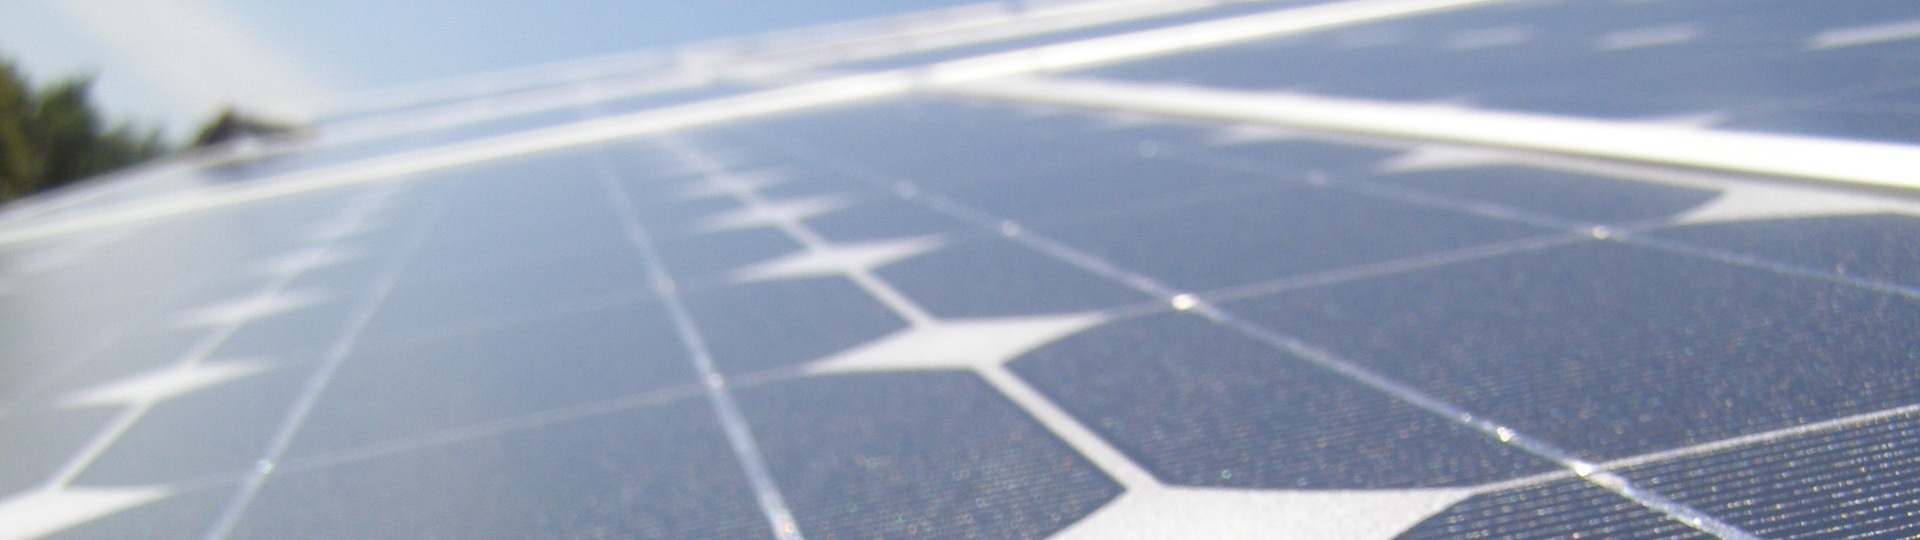 how to get free solar panels from the government